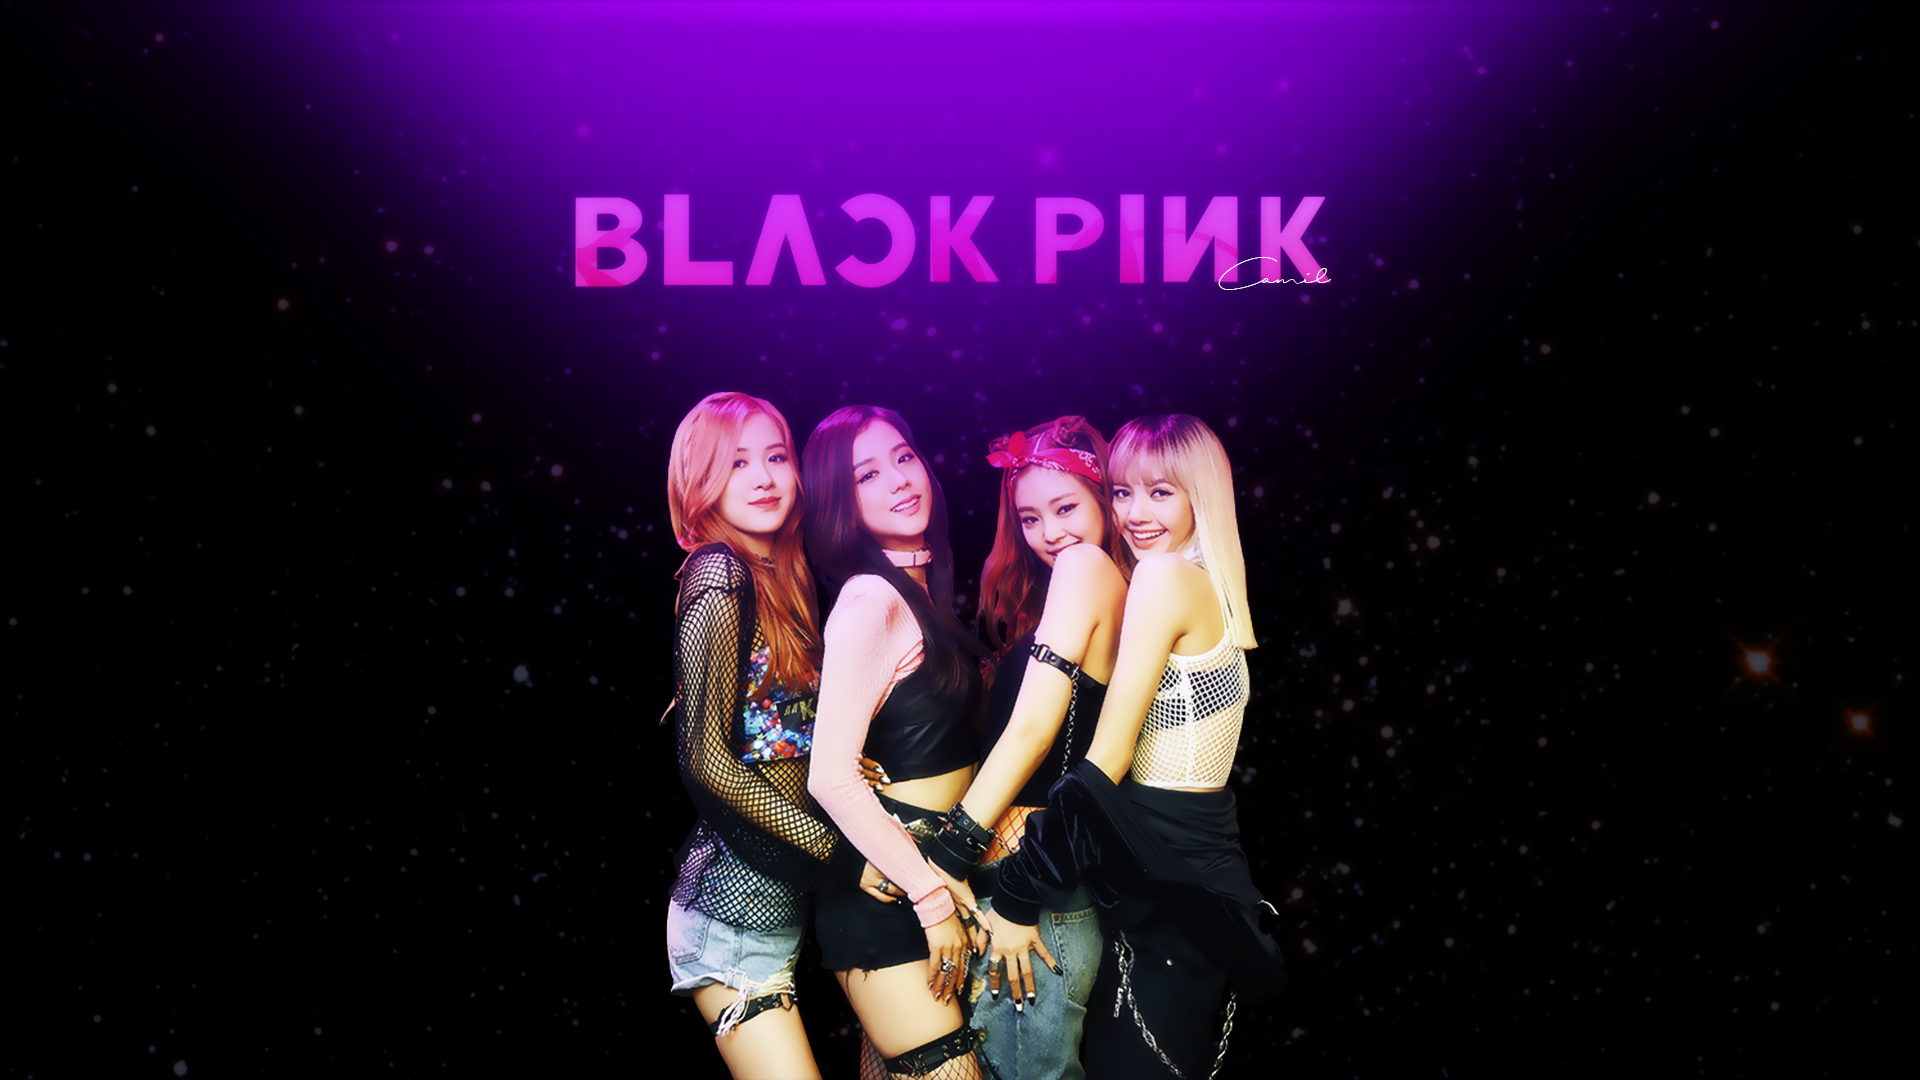 1 Wallpaper Kpop Blackpink Wallpaper Hd Duvar Kagidi Arka